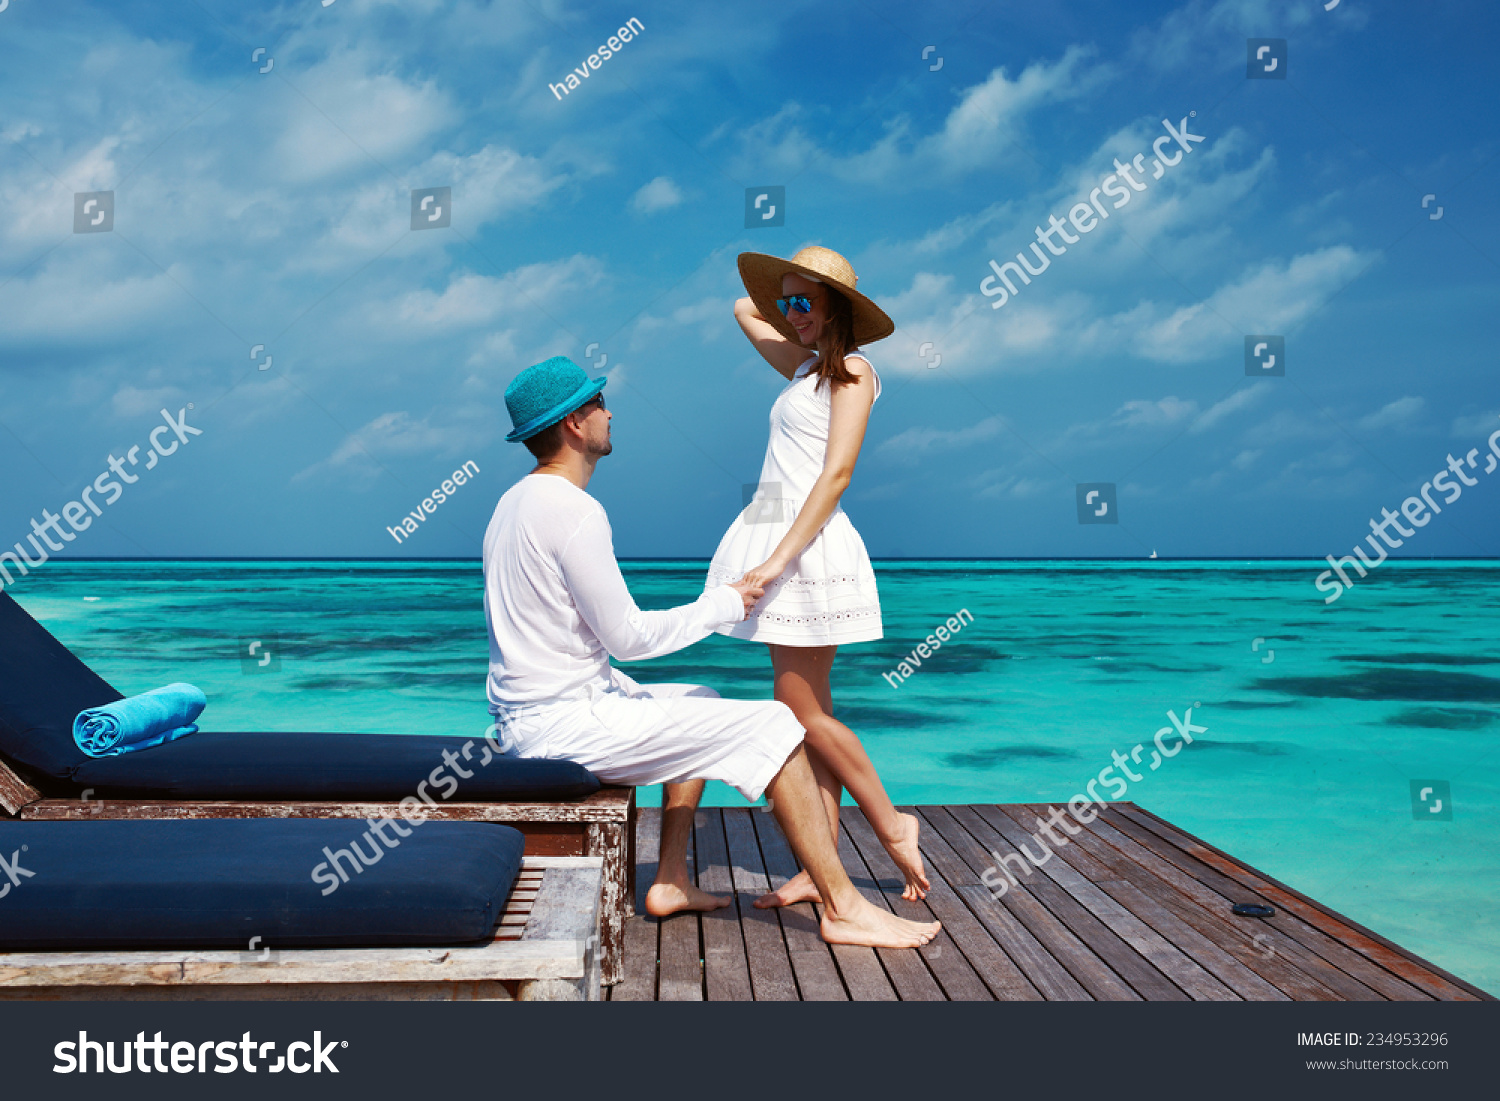 Couple on a tropical beach jetty at Maldives #234953296